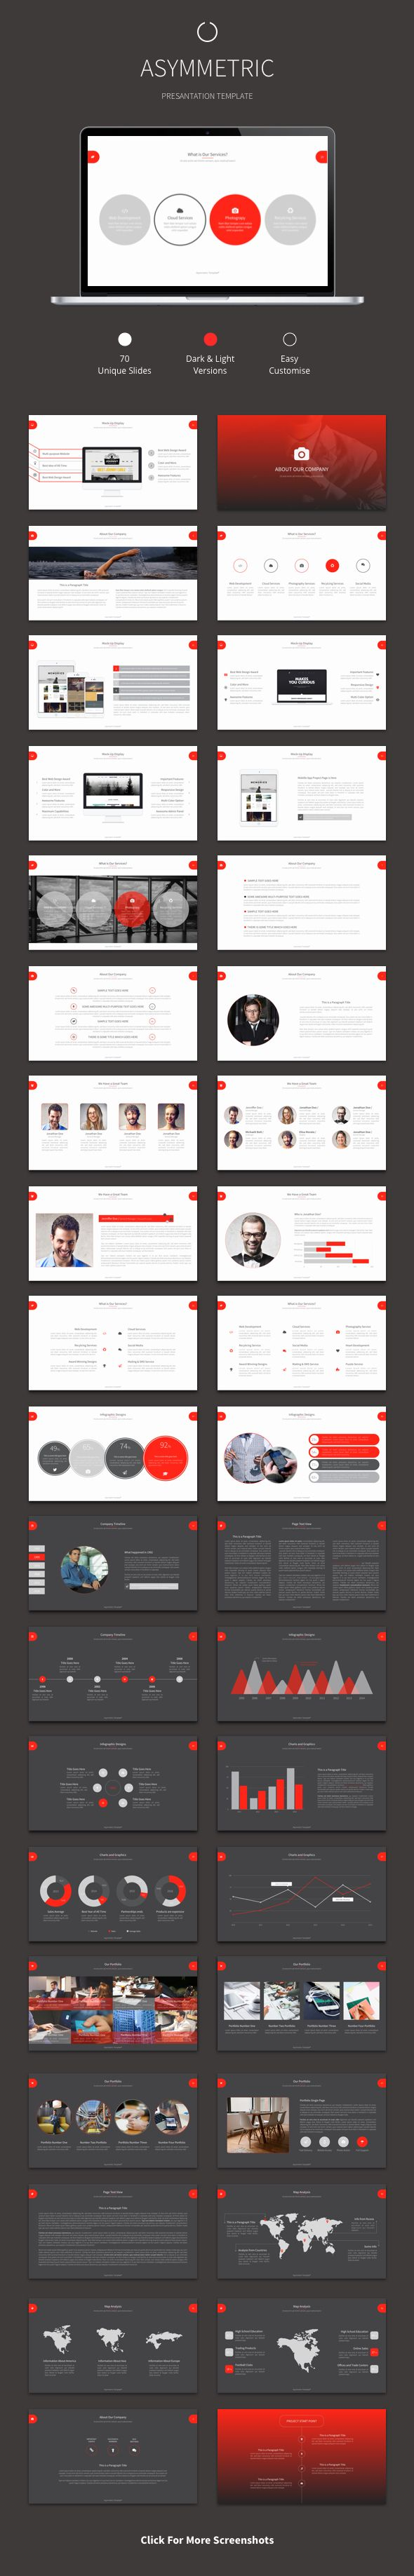 Asymmetric - Powerpoint Template